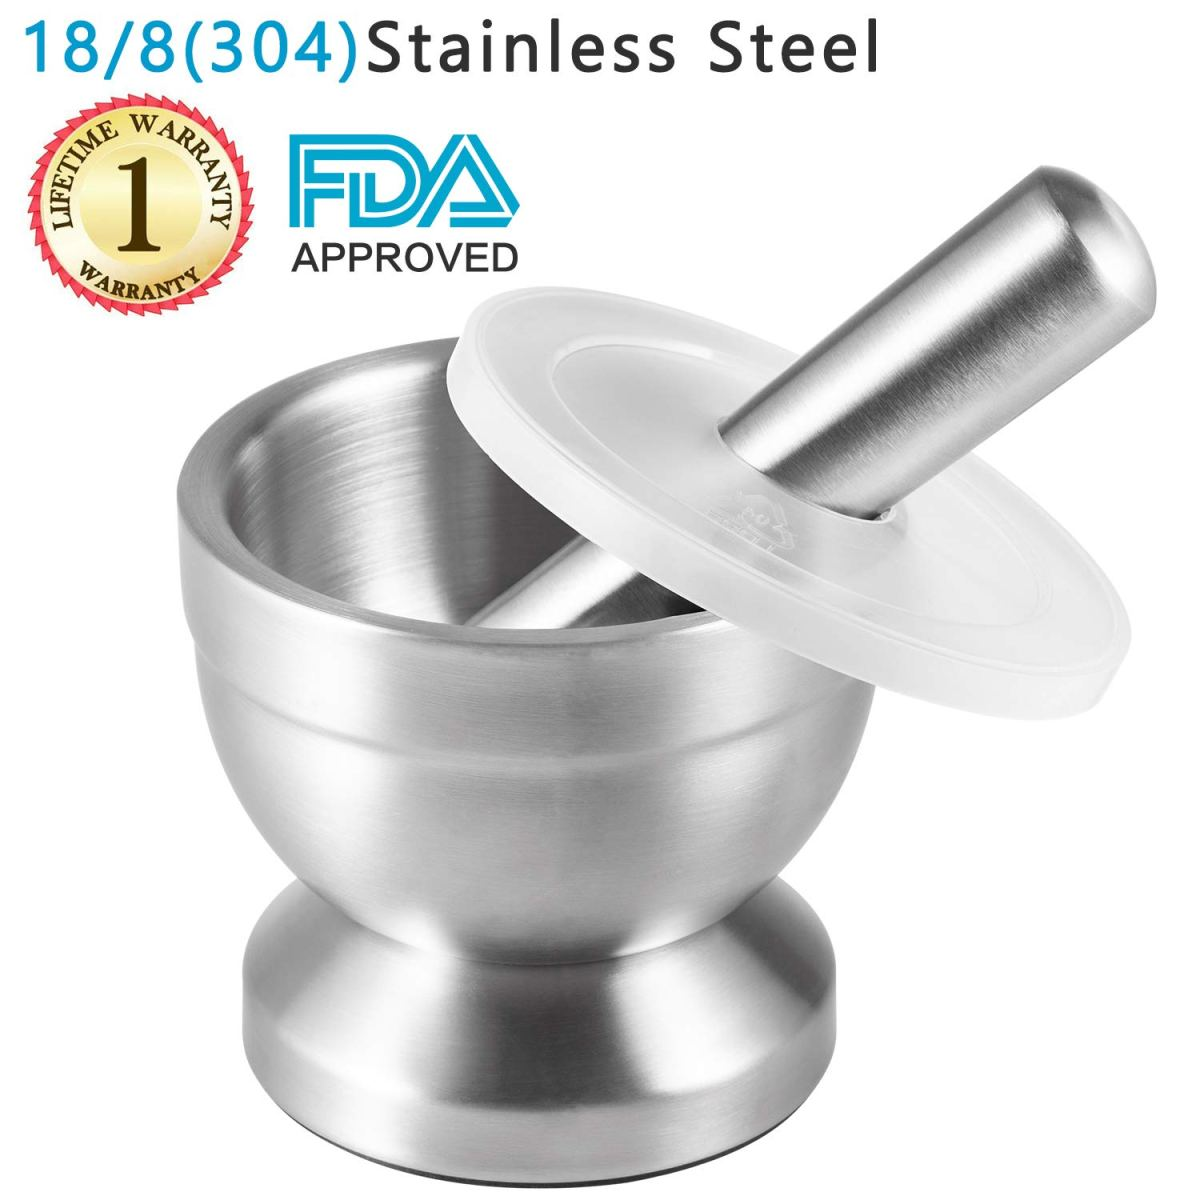 Amazon : 18/8 Stainless Steel Mortar and Pestle Just $11.99 W/Code (Reg : $19.99) (As of 2/15/2019 1.31 PM CST)